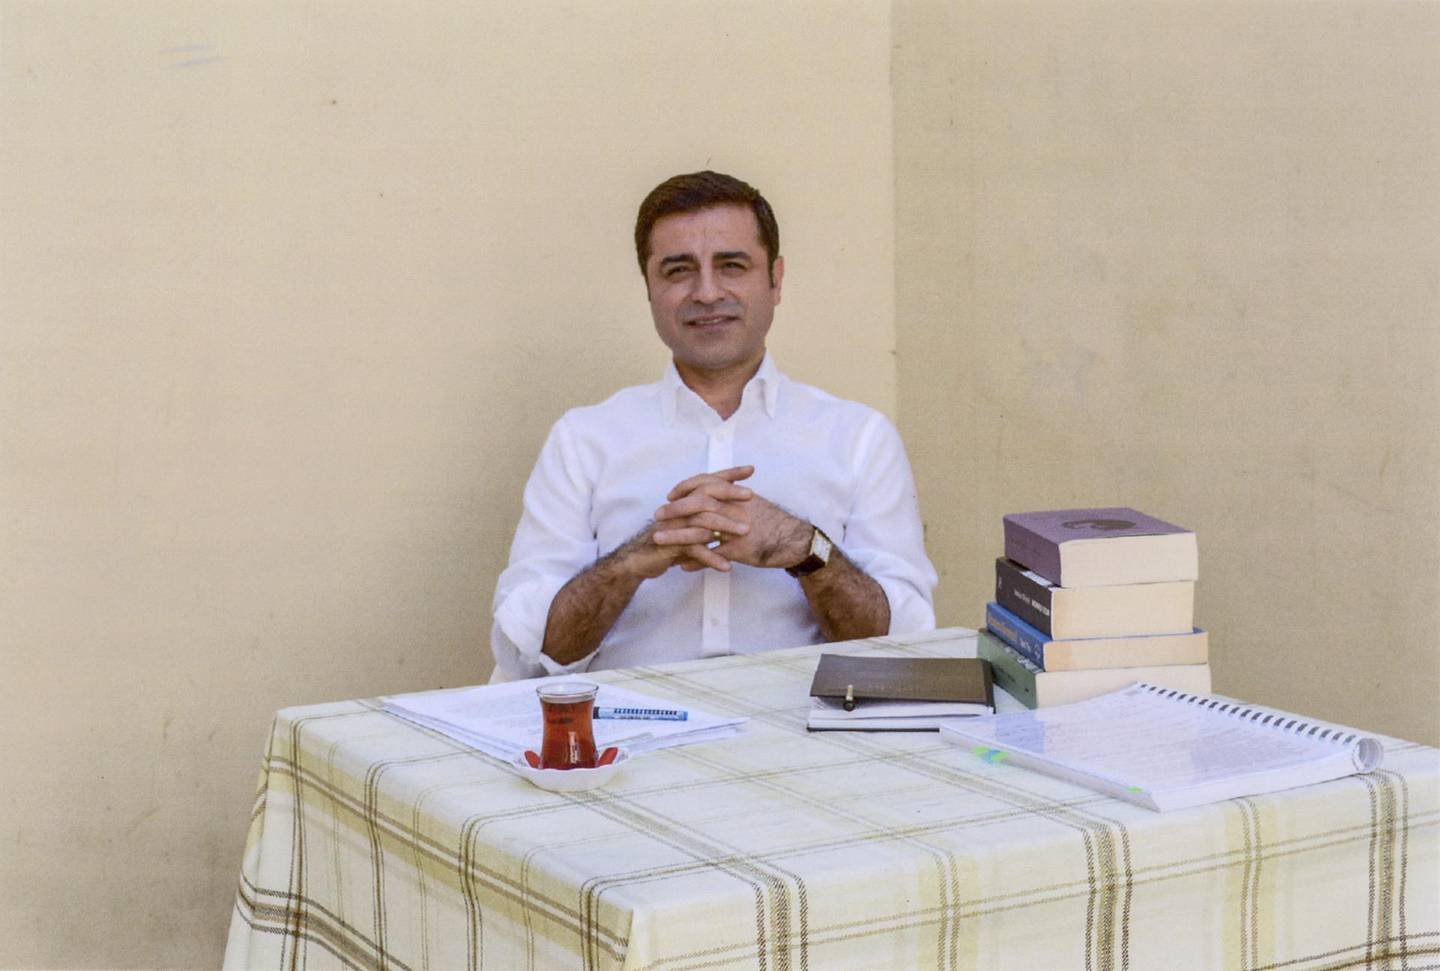 """In this handout photo provided by the pro-Kurdish Peoples's Democratic Party (HDP), former party leader Selahattin Demirtas and current Turkish presidential candidate, sits in prison in Edirne on May 4, 2018.  The HDP announced the nomination of Demirtas for the upcoming presidential elections in Turkey, scheduled for June 24, 2018. Demirtas, who has been behind bars since November 2016, is in prison accused of links to outlawed Kurdish rebels and is facing a 142-year sentence on charges of leading a terror organization. It's unclear if Turkey's electoral board will approve Demirtas's candidacy. / AFP PHOTO / Kurdish Peoples's Democratic Party (HDP) / HANDOUT / RESTRICTED TO EDITORIAL USE - MANDATORY CREDIT """"AFP PHOTO / HDP"""" - NO MARKETING NO ADVERTISING CAMPAIGNS - DISTRIBUTED AS A SERVICE TO CLIENTS"""